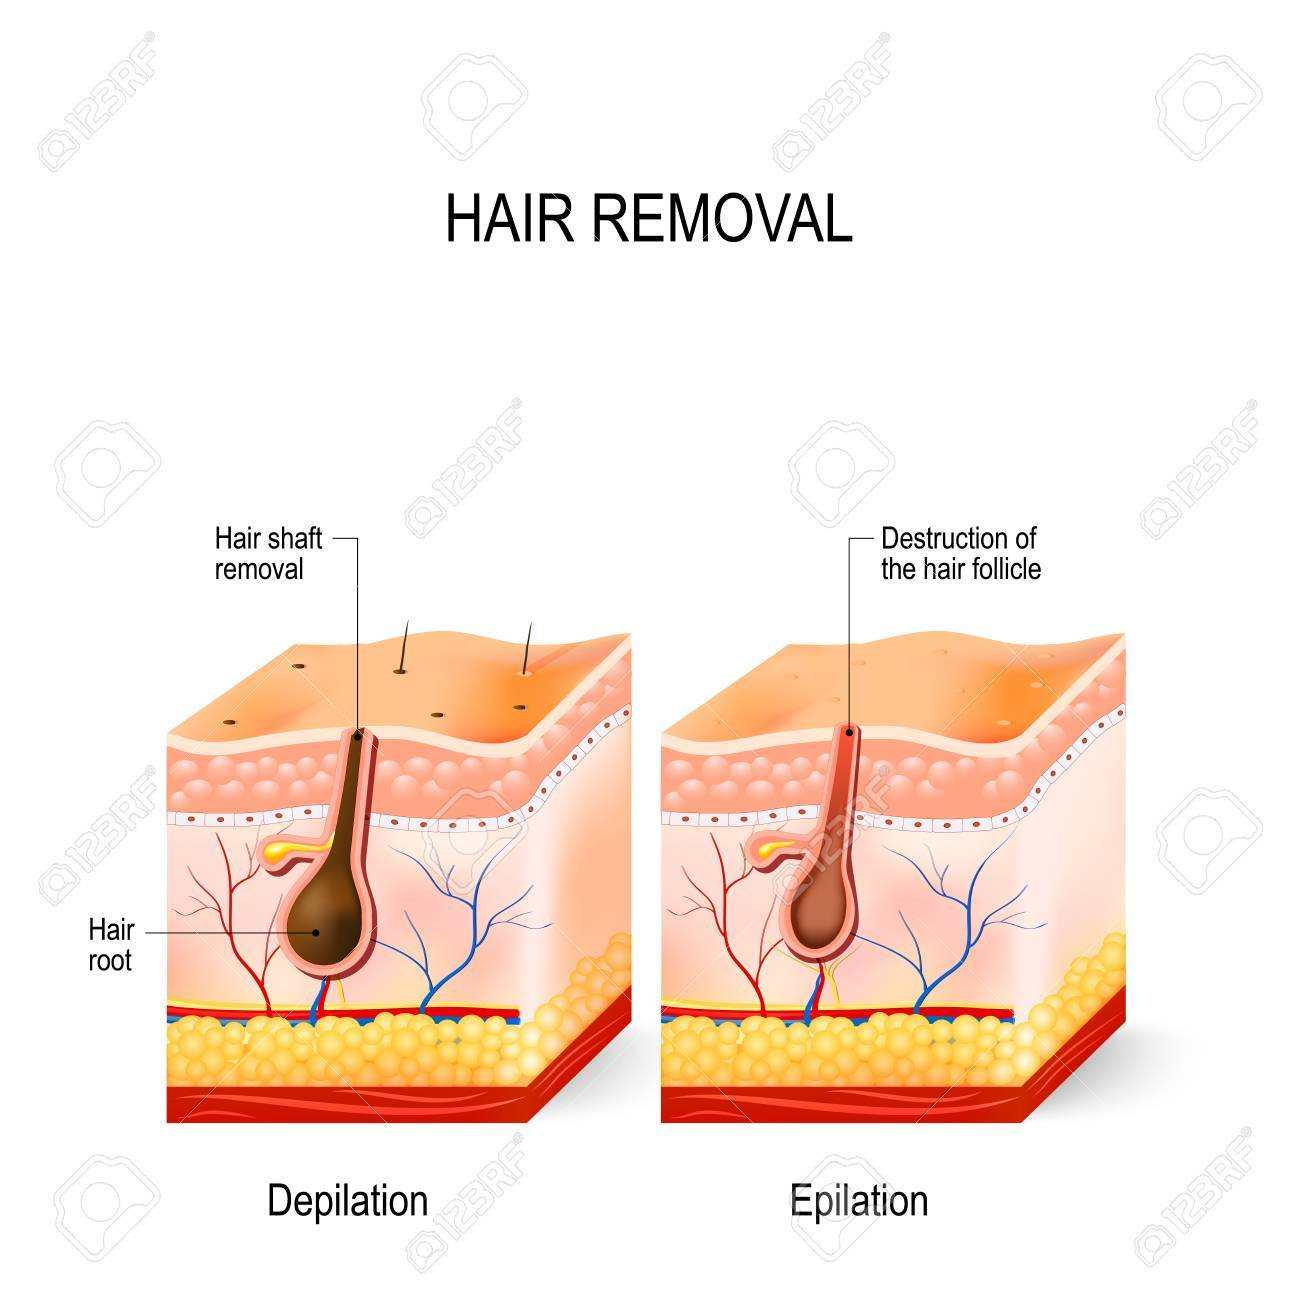 Hair removal the difference between epilation and depilation hair removal the difference between epilation and depilation skincare stock vector 88992208 pooptronica Choice Image